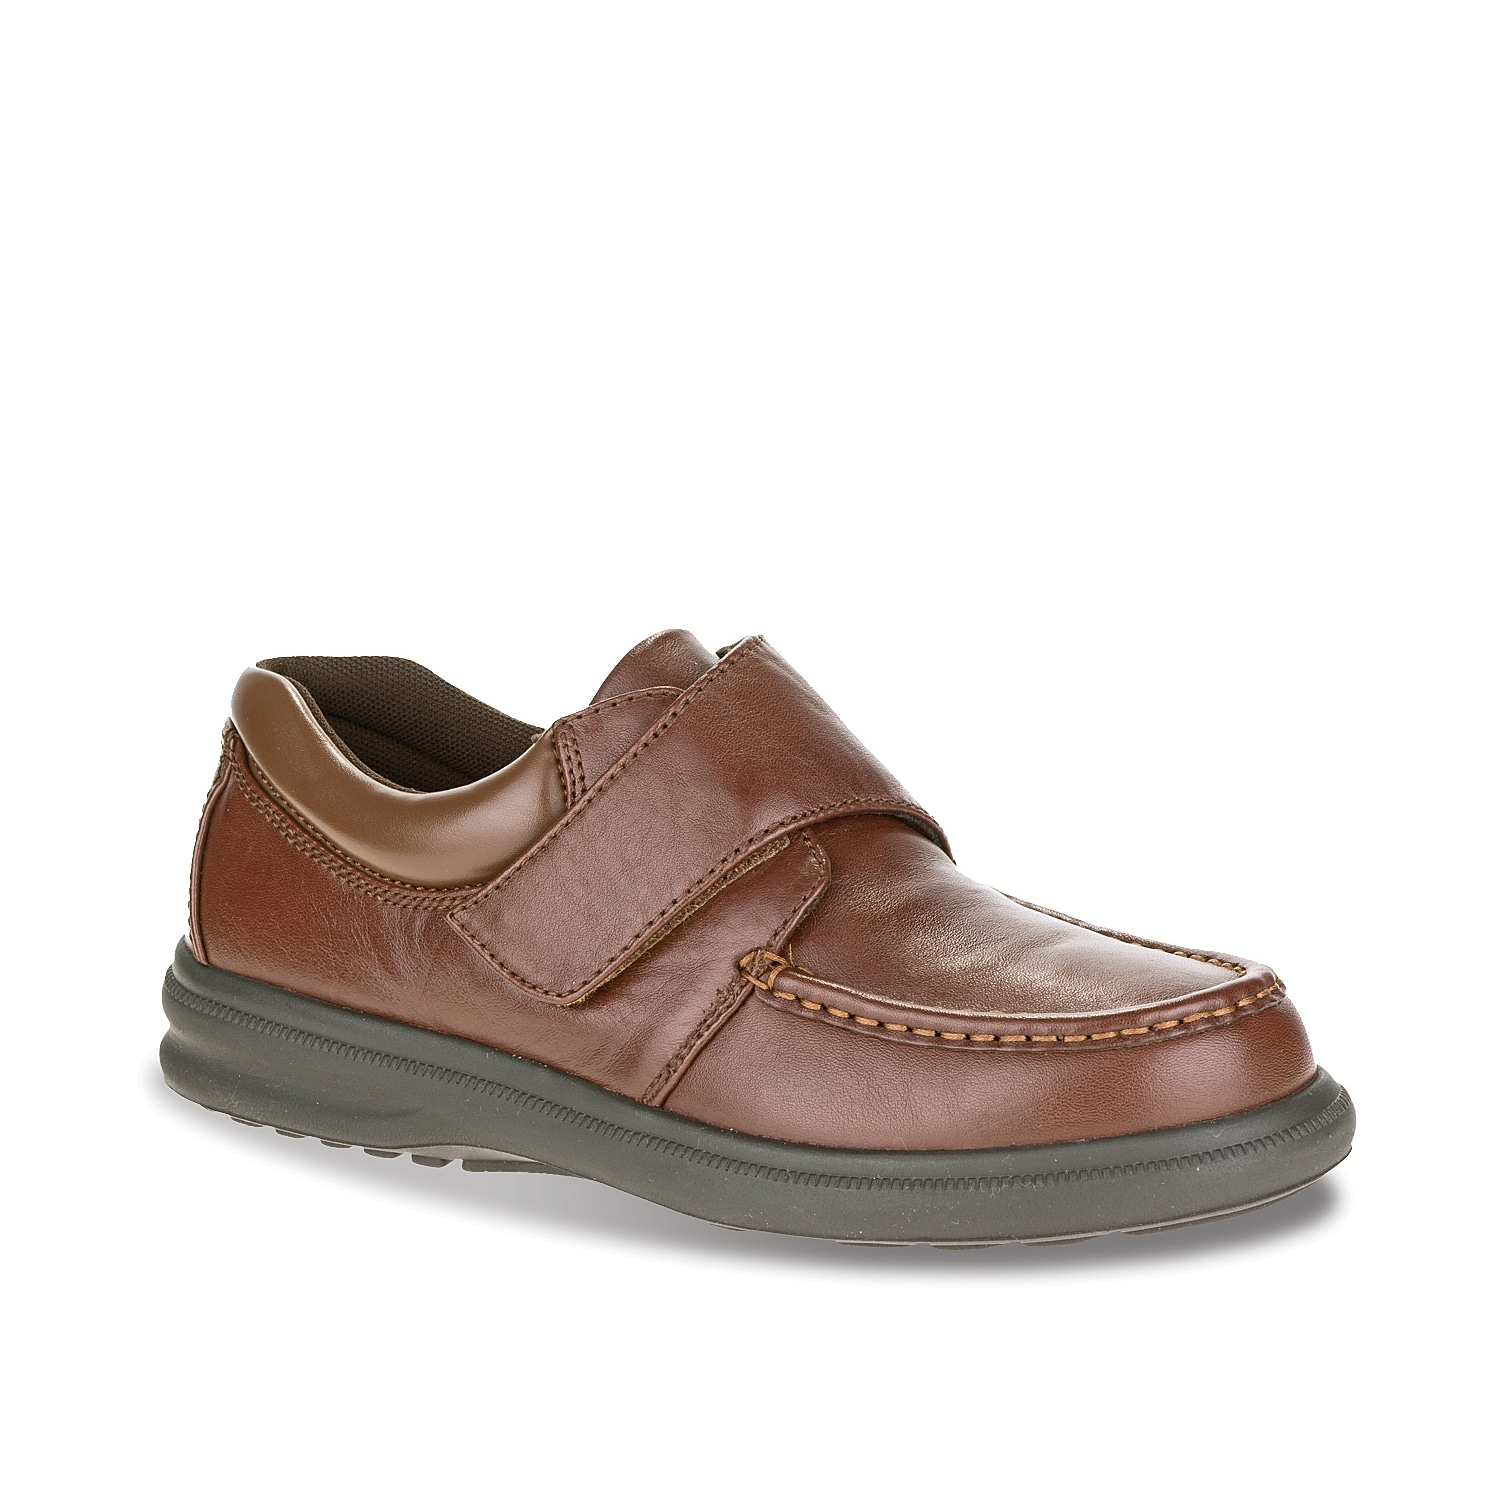 Enjoy the unmatched comfort of the Gil slip-on from Hush Puppies. A removable insole makes these sneakers easy to add your own orthotics for extra support.